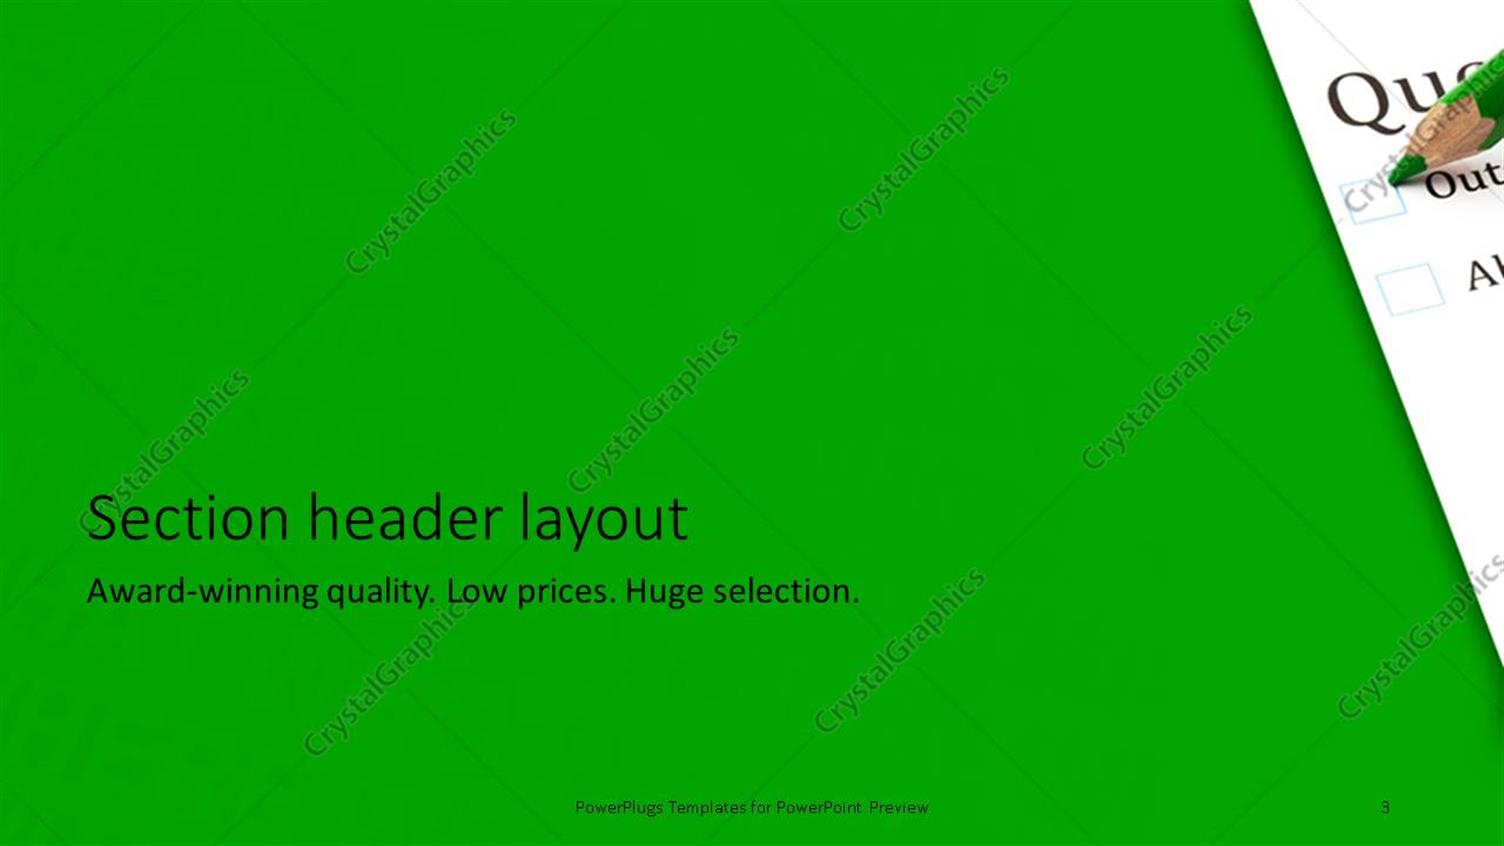 Powerpoint template questionnaire check boxes with green crayon powerpoint products templates secure toneelgroepblik Image collections